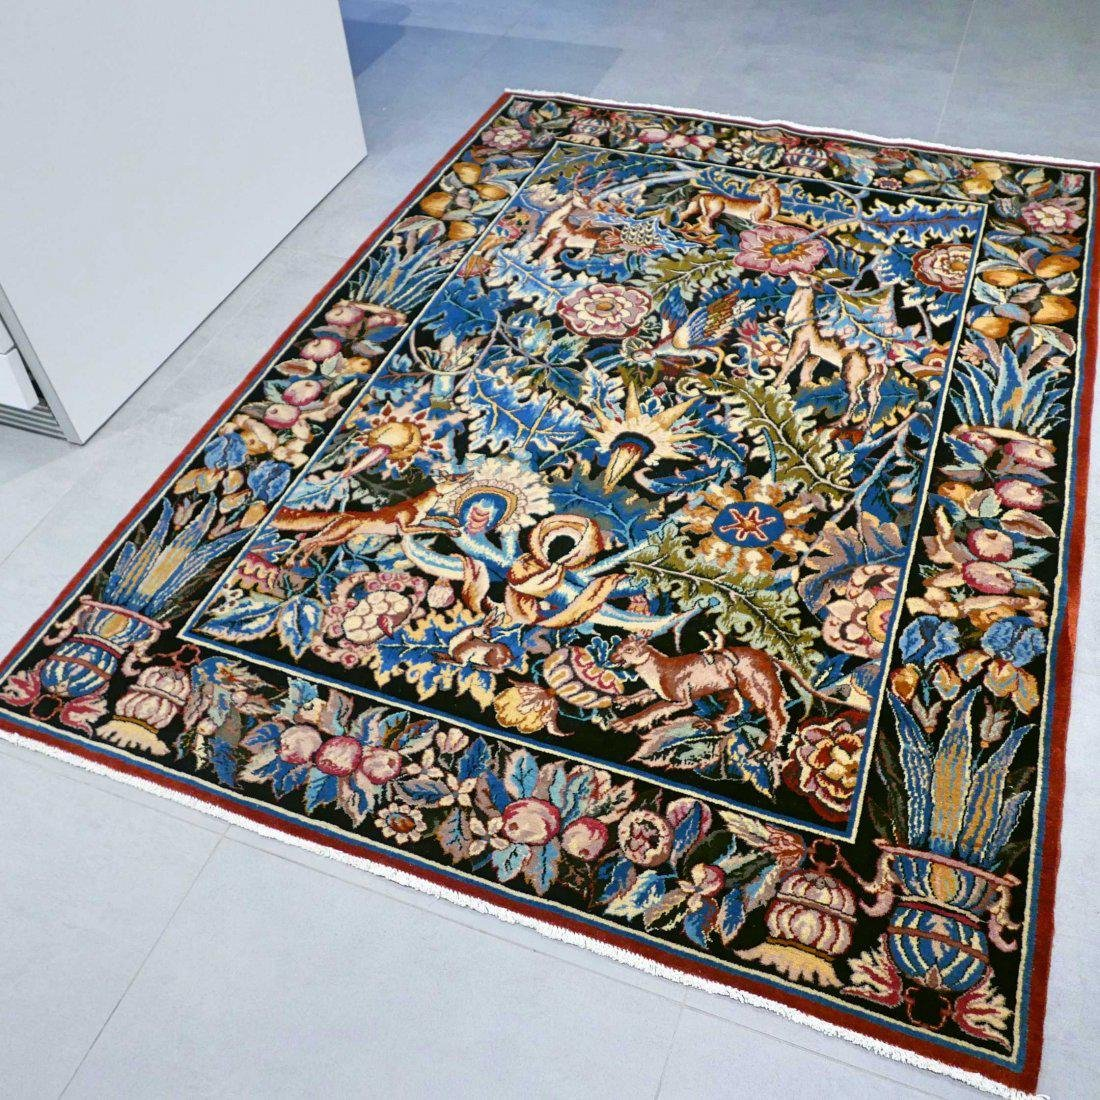 Tabriz Hand Knotted Rug 6.4x4.7 - 2